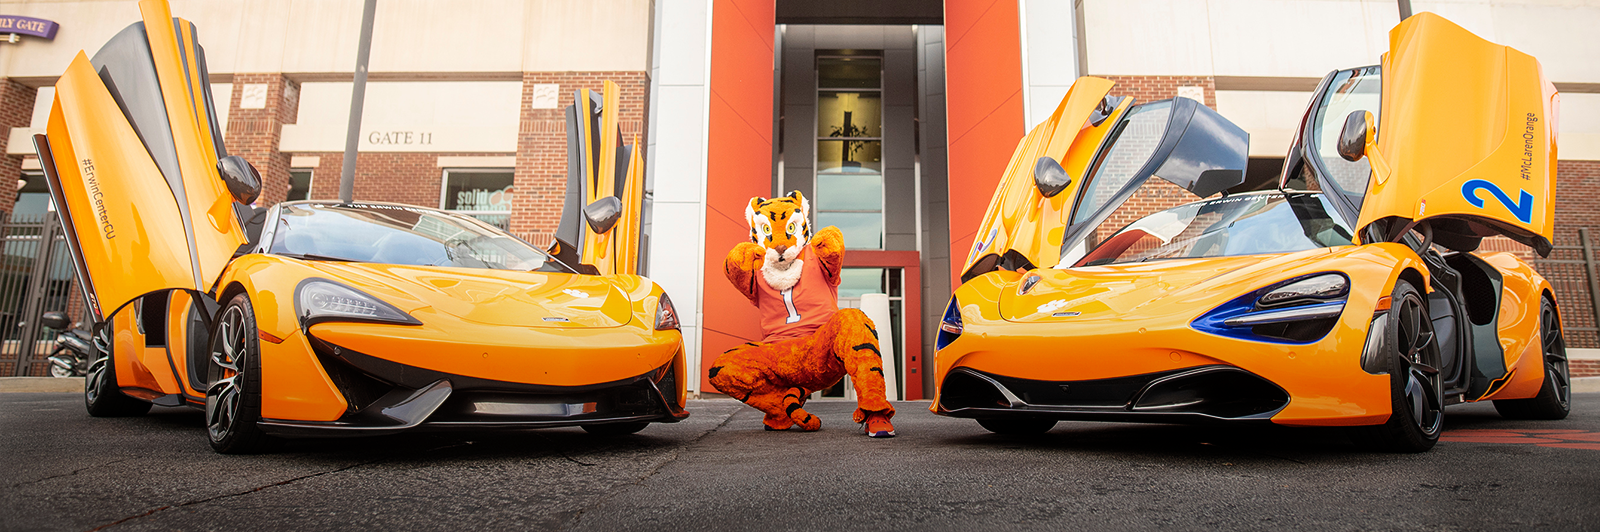 The Clemson Tiger poses with a McLaren 570 and a McLaren 720 in front of Memorial Stadium.